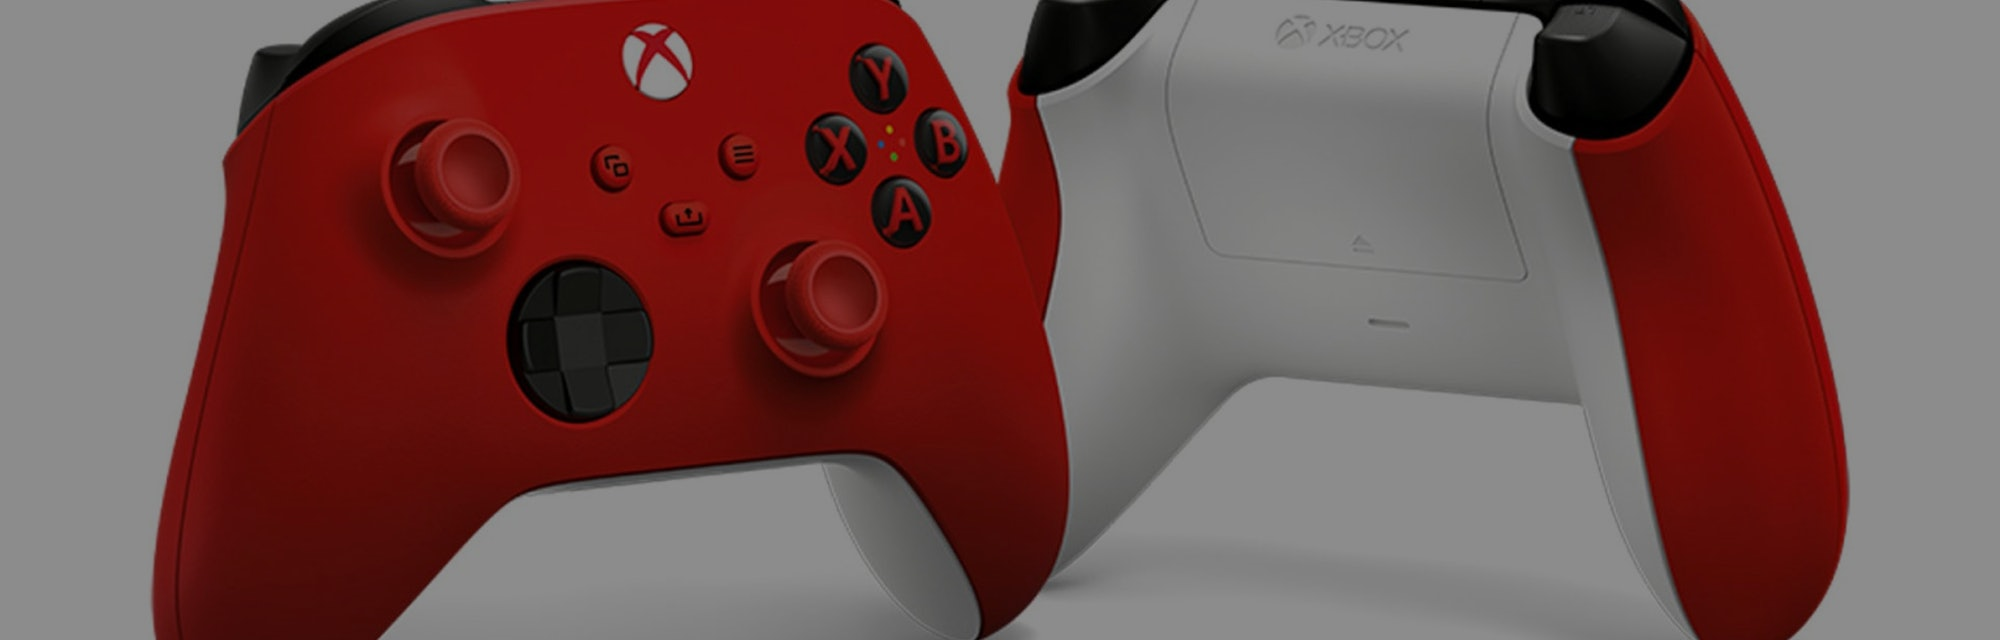 """Microsoft is releasing a new Xbox Wireless Controller in a """"Pulse Red"""" color."""